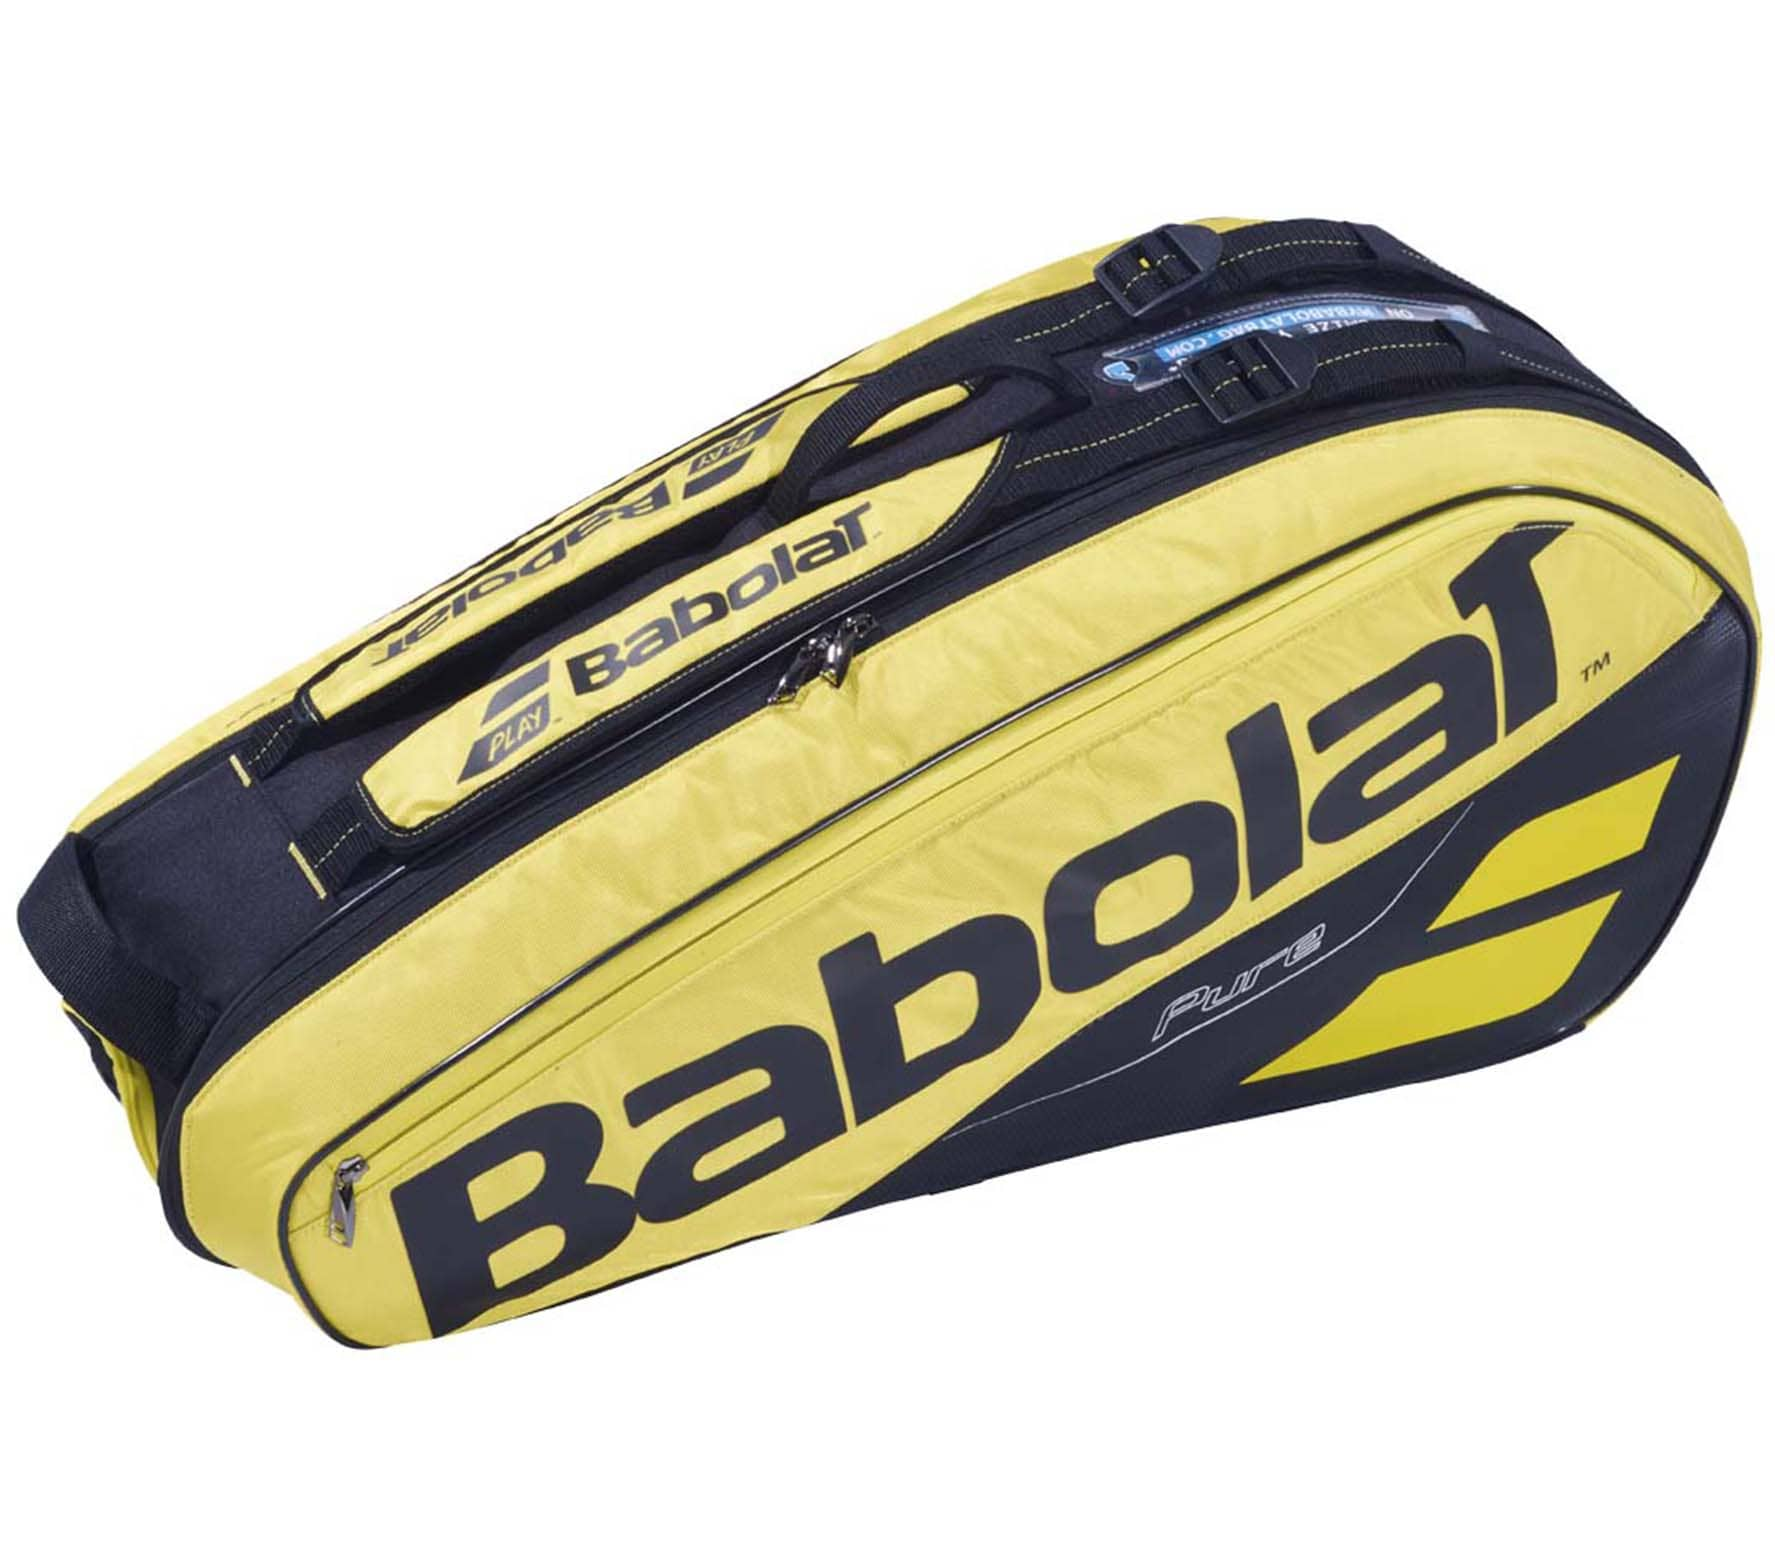 Babolat - RH X 6 Pure Aero tennis bag (yellow/black)